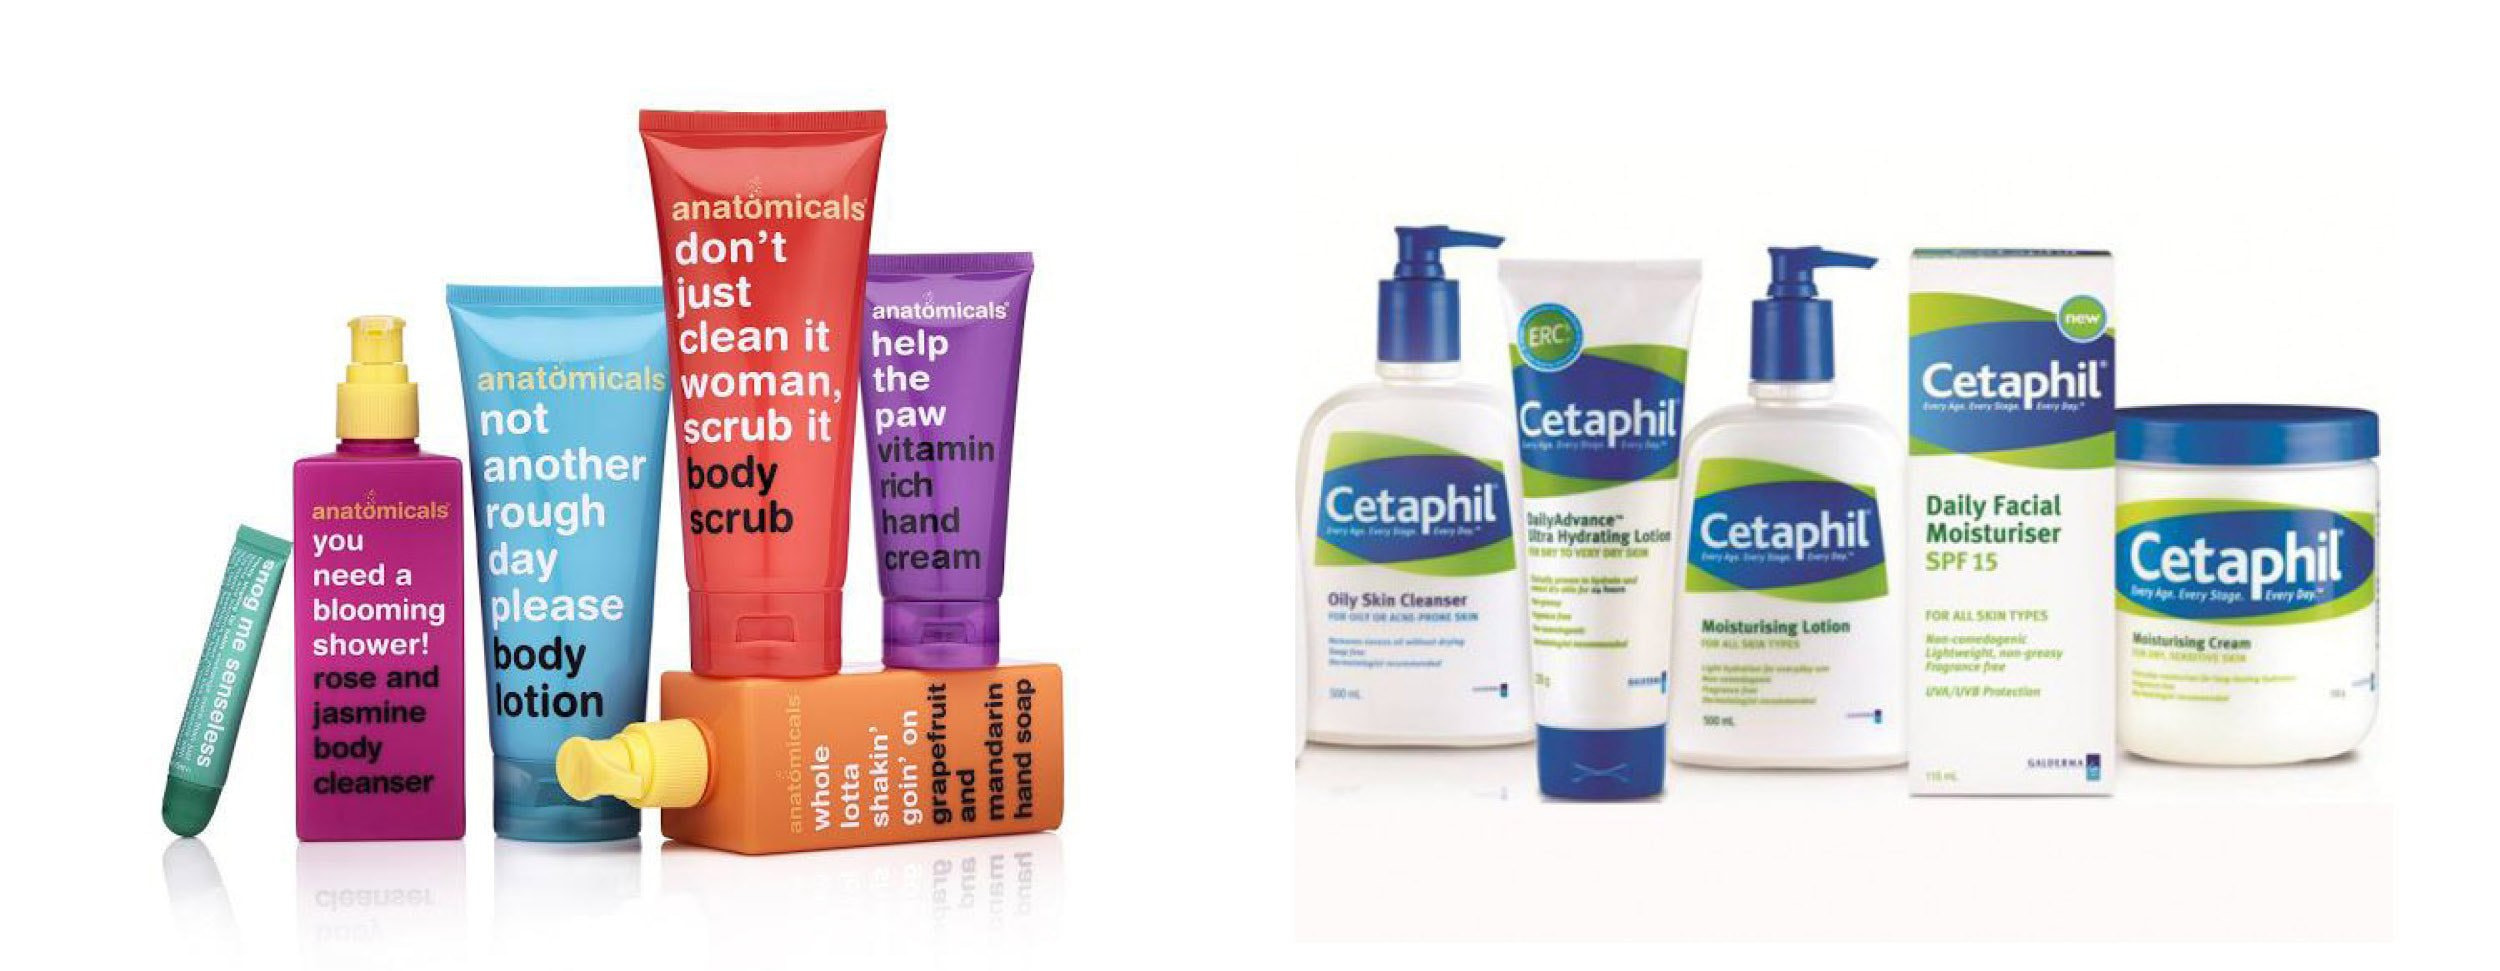 Anatomicals and Cetaphil are two cosmetic brands that give of completely different first impressions through design alone.